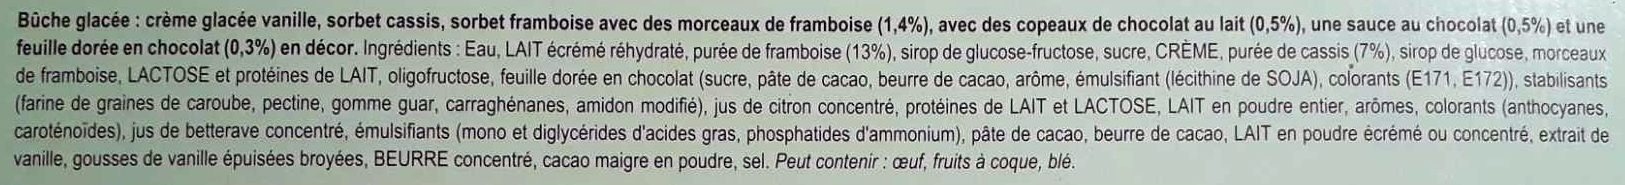 Bûche Tradition, vanille framboise cassis - Ingredients